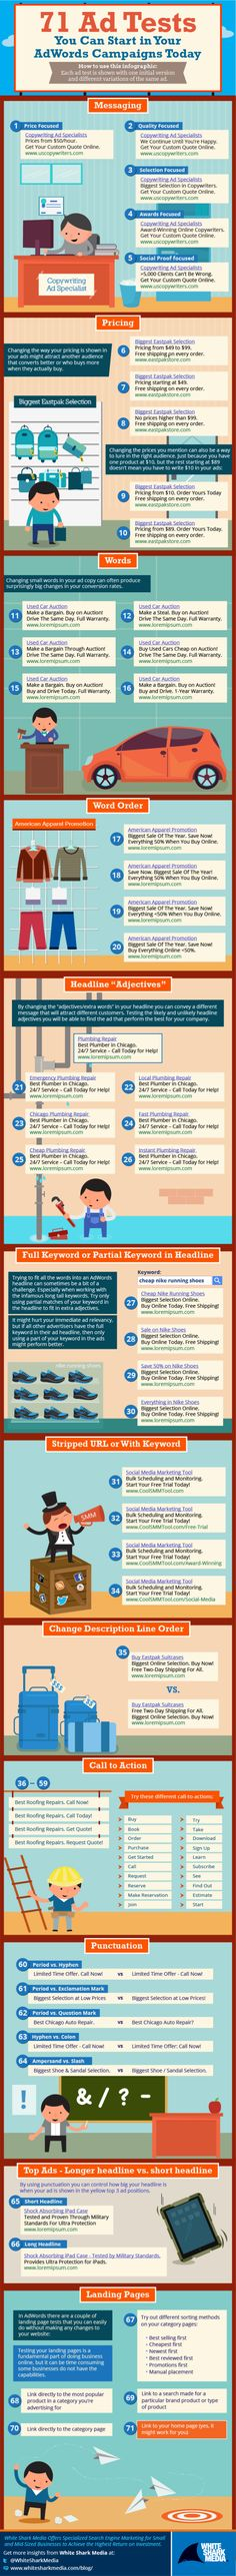 71 Ad Tests You Can Start In Your AdWords Campaigns Today [INFOGRAPHIC] #adwords#campaigns